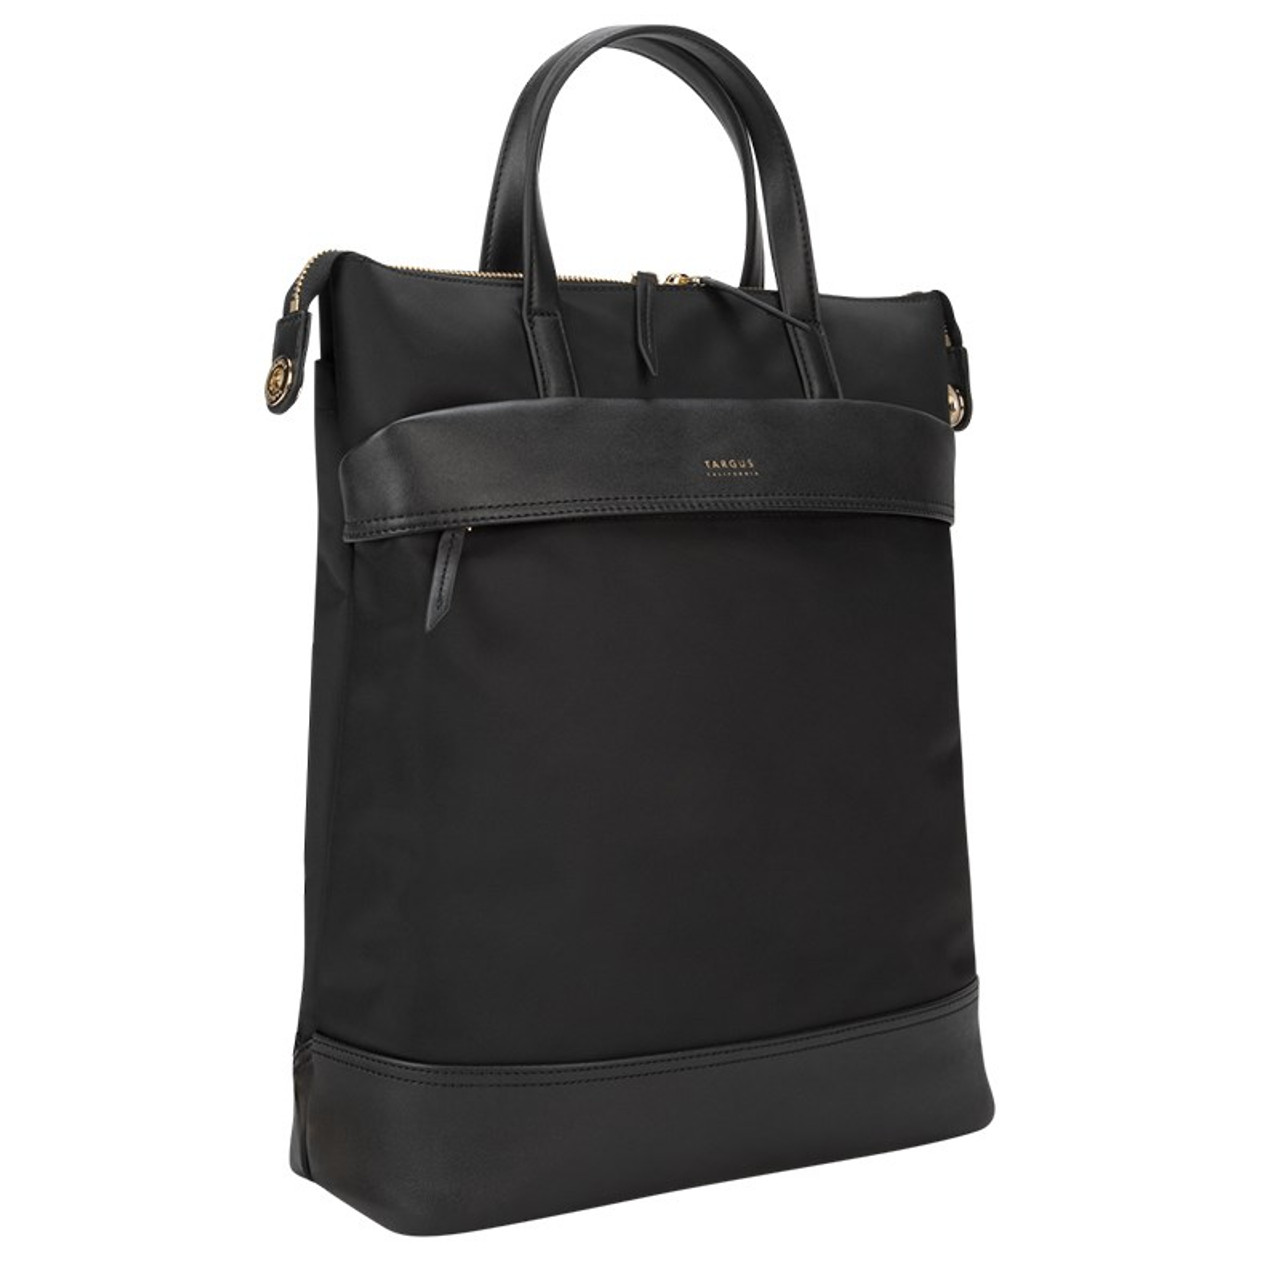 Image for Targus 15in Newport Convertible 2-in-1 Tote/Backpack - Black CX Computer Superstore